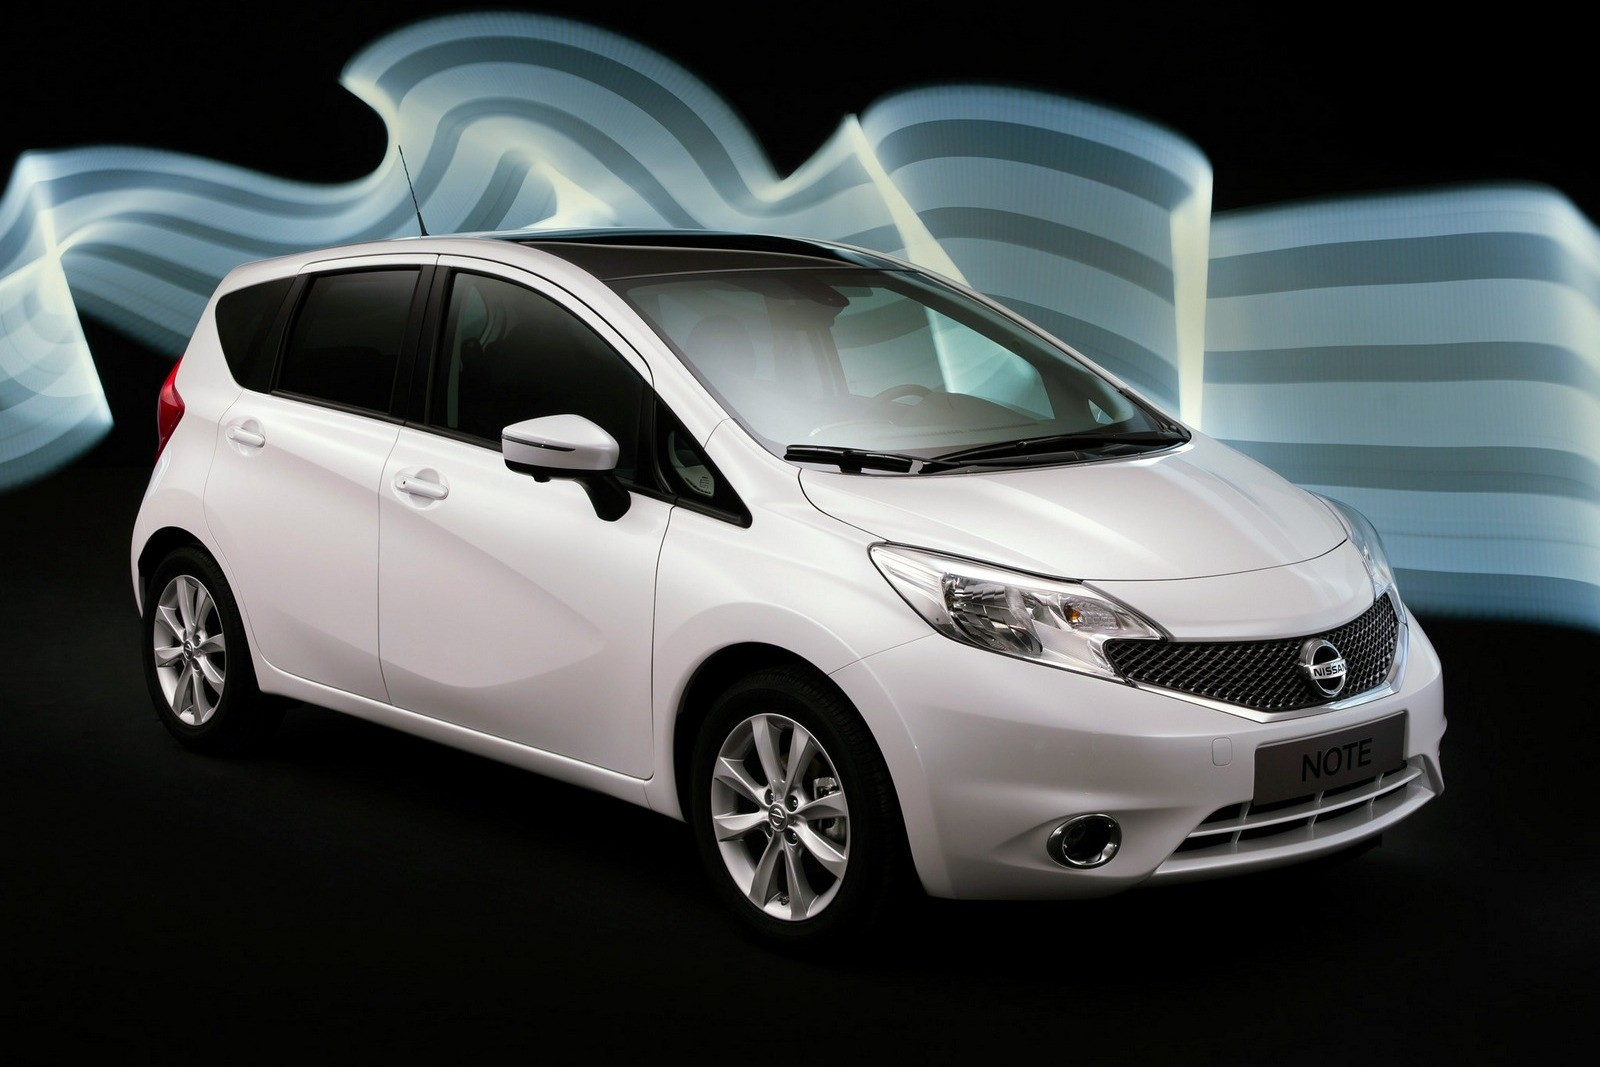 Nissan Note Worldwide (E12) '2013–17